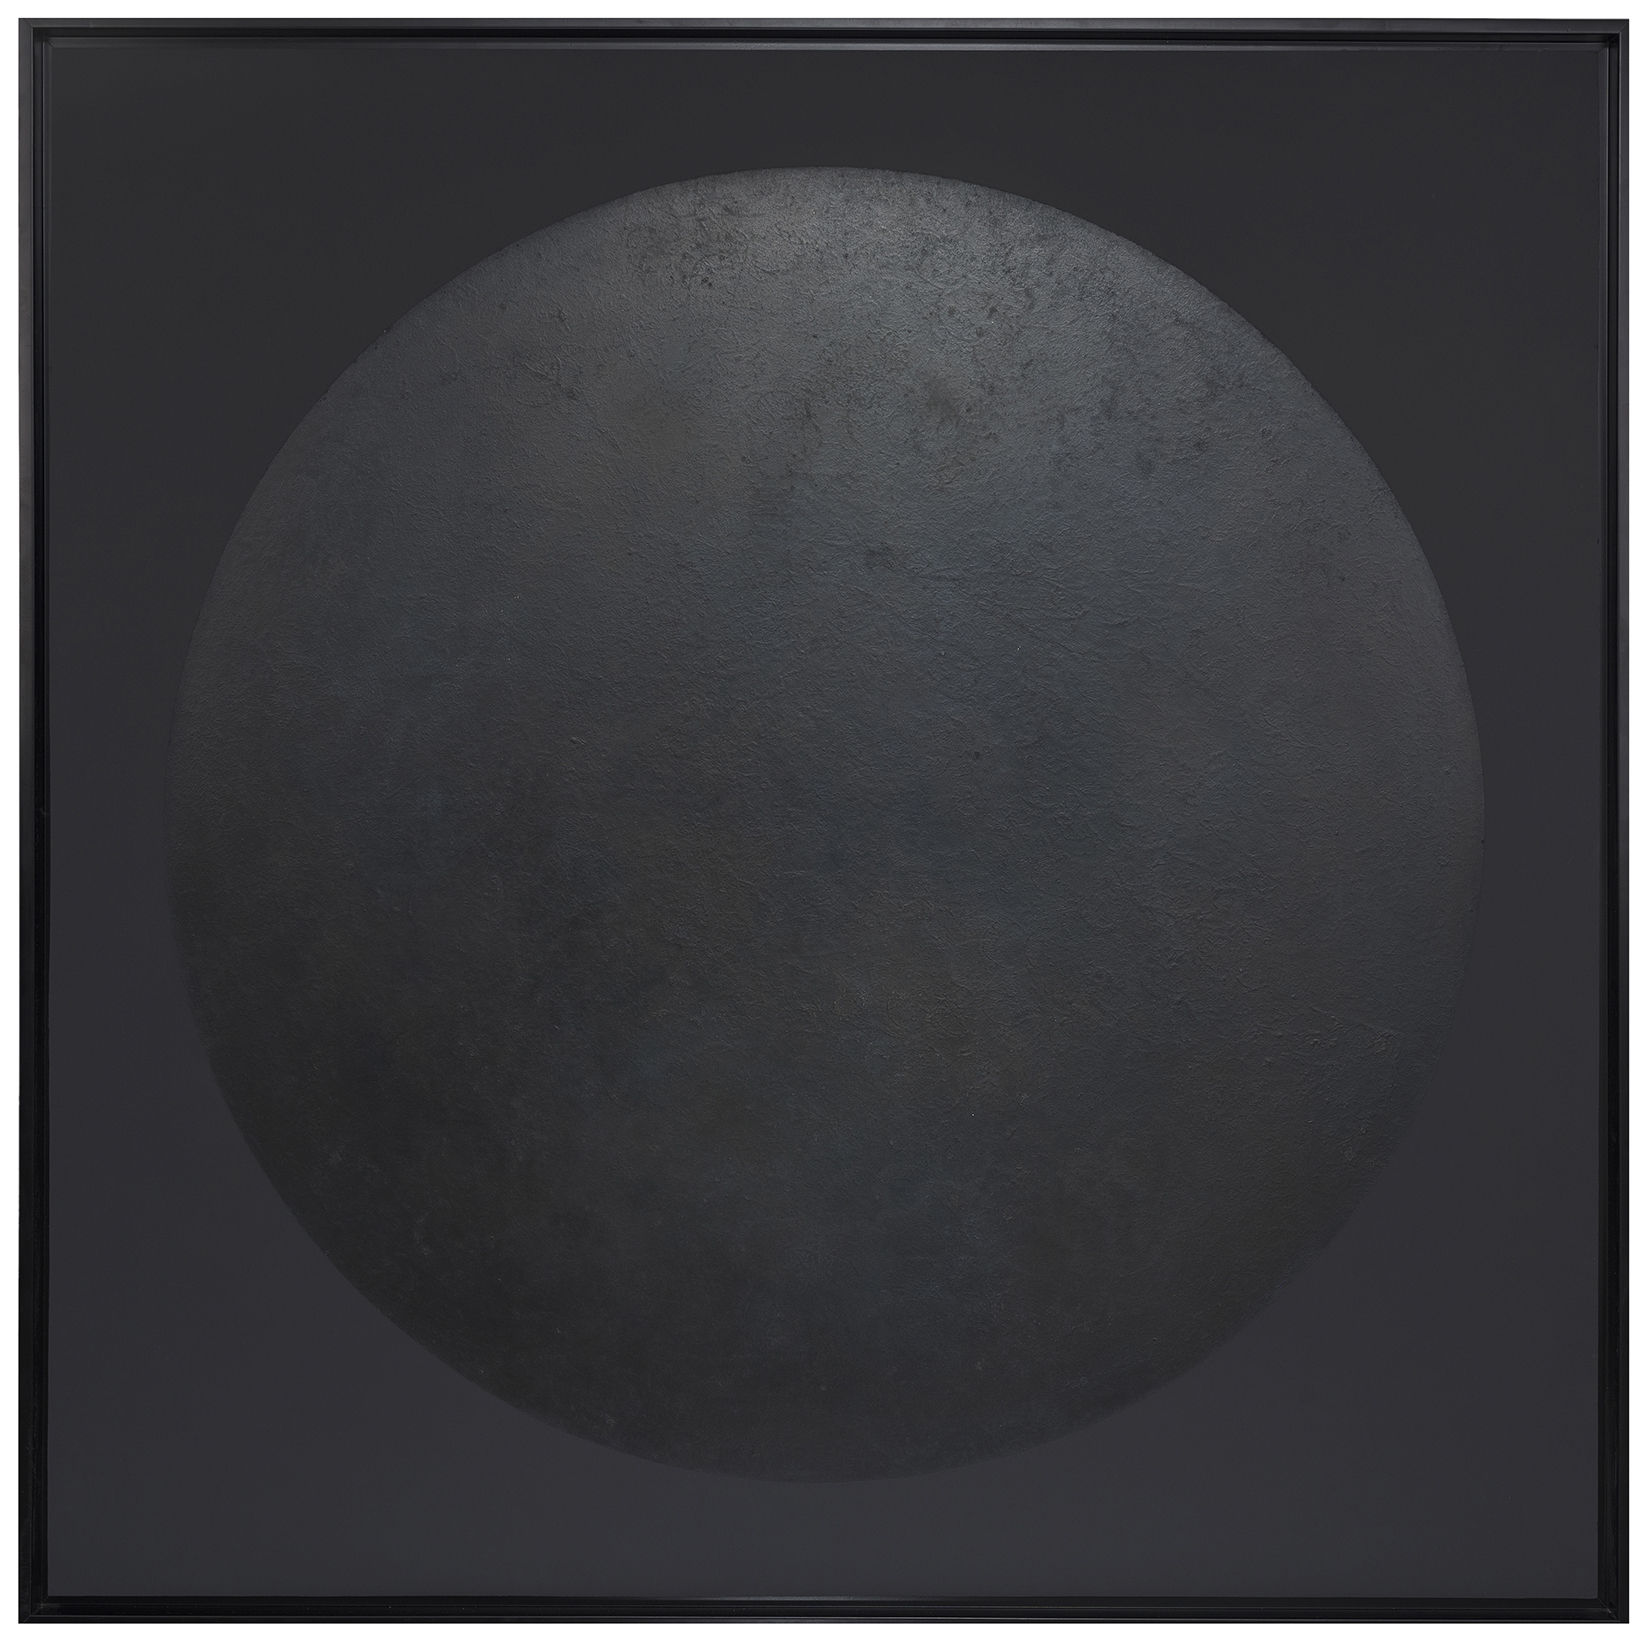 Black moon - Lacquered finition in wax - Size :  120 x 120 cm